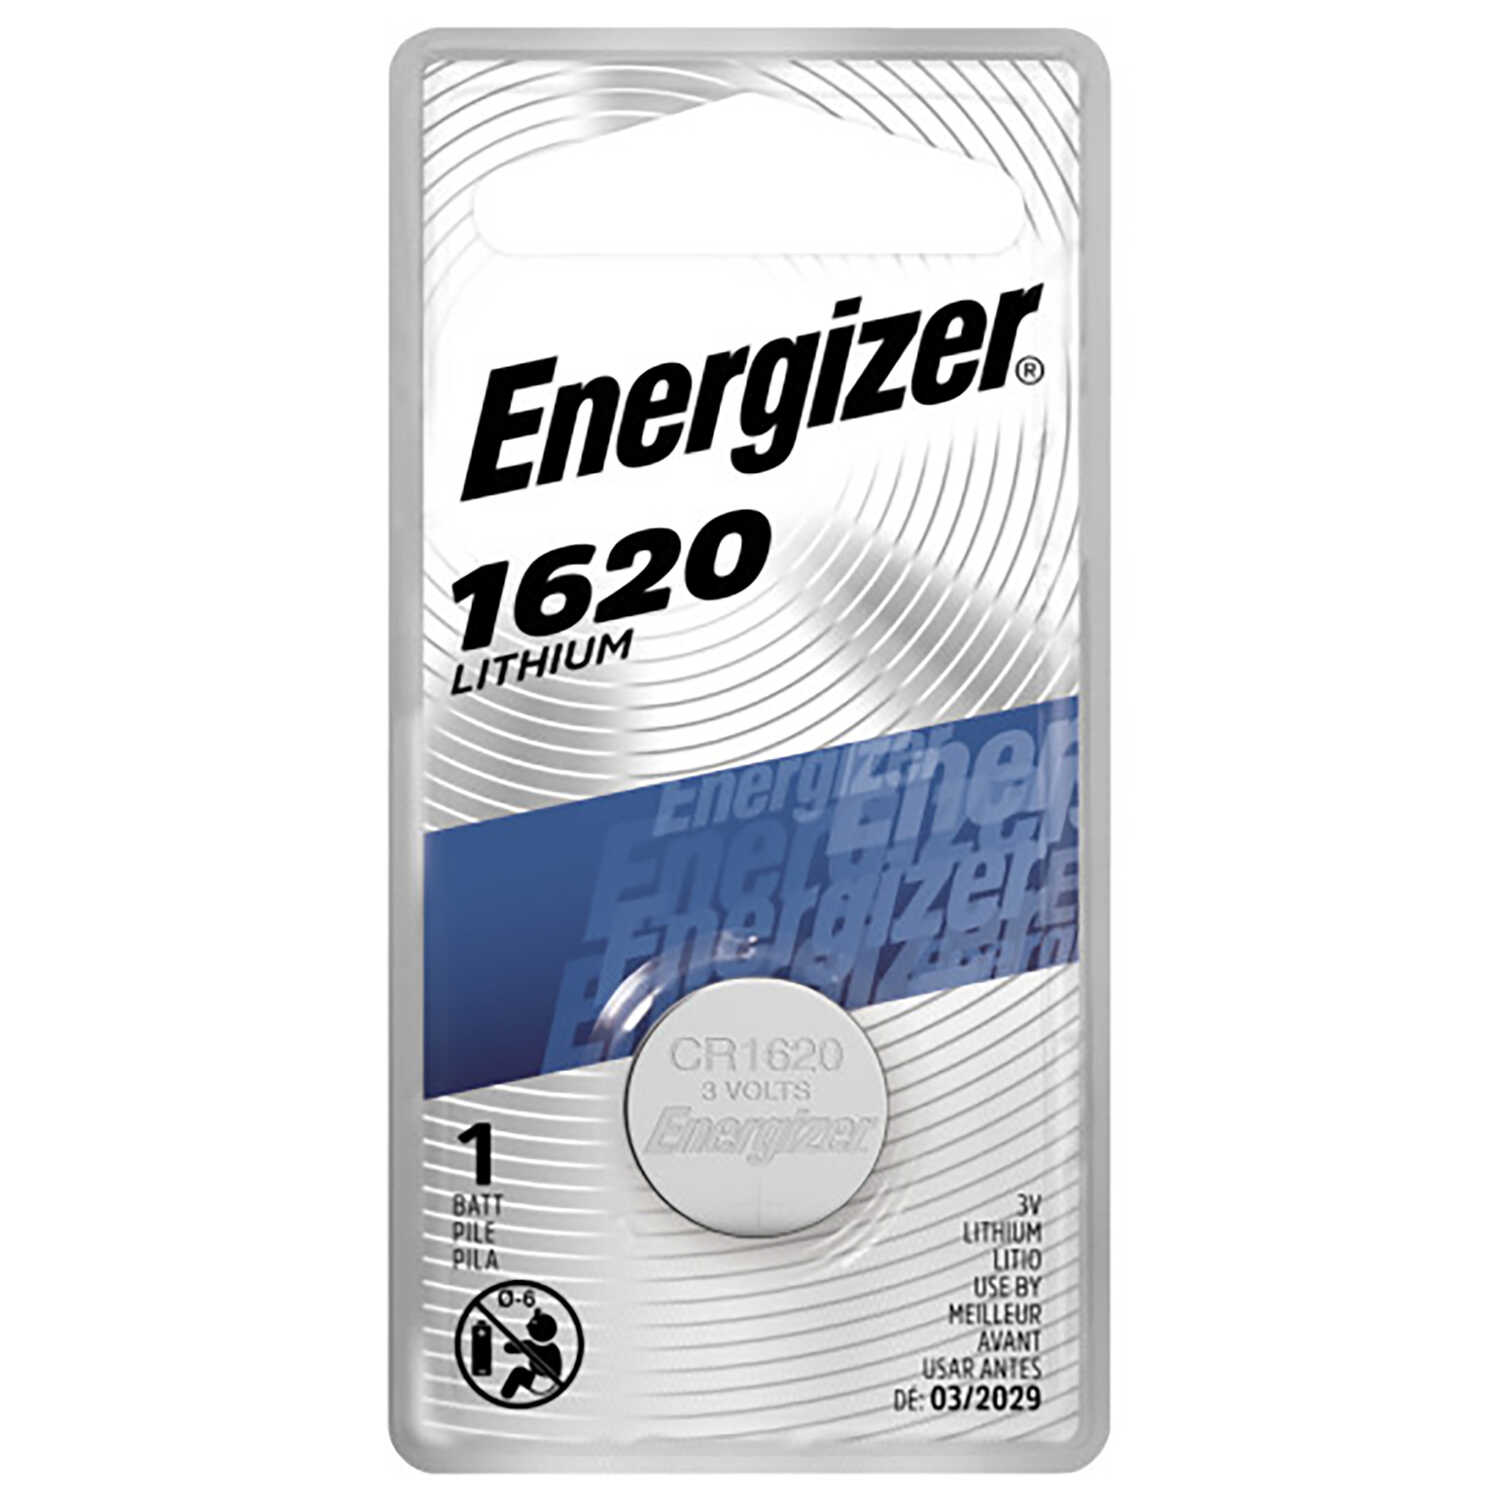 Energizer  Lithium  1620  3 volt Keyless Entry Battery  1 pk